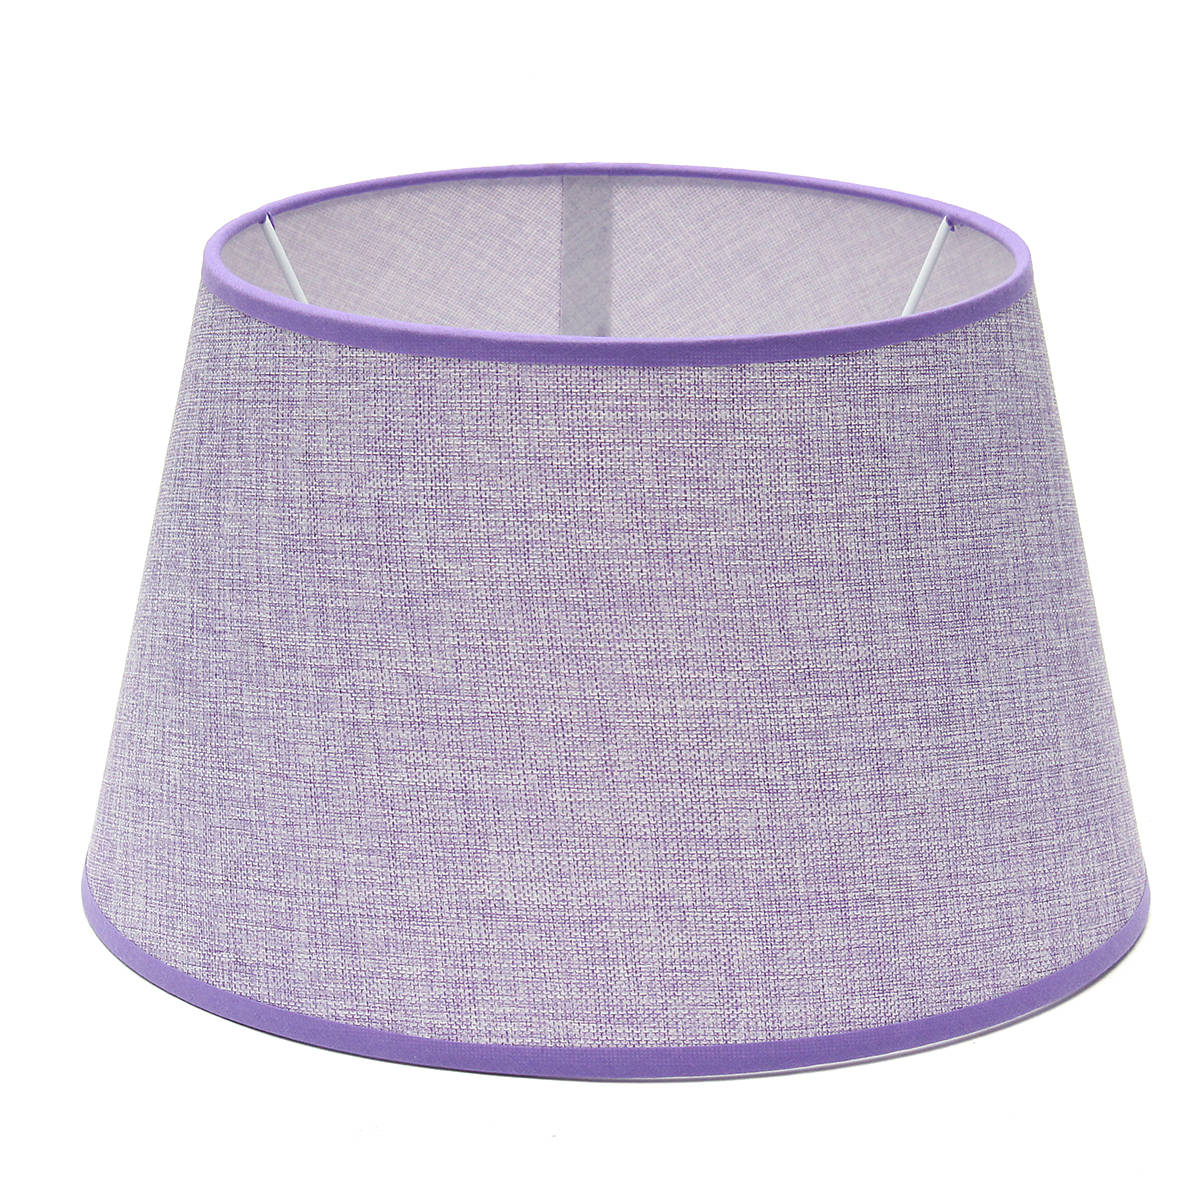 230*300*185MM Ceiling Lamp Shade Table Lampshape Home Cotton Textured Fabric PVC Linen Room